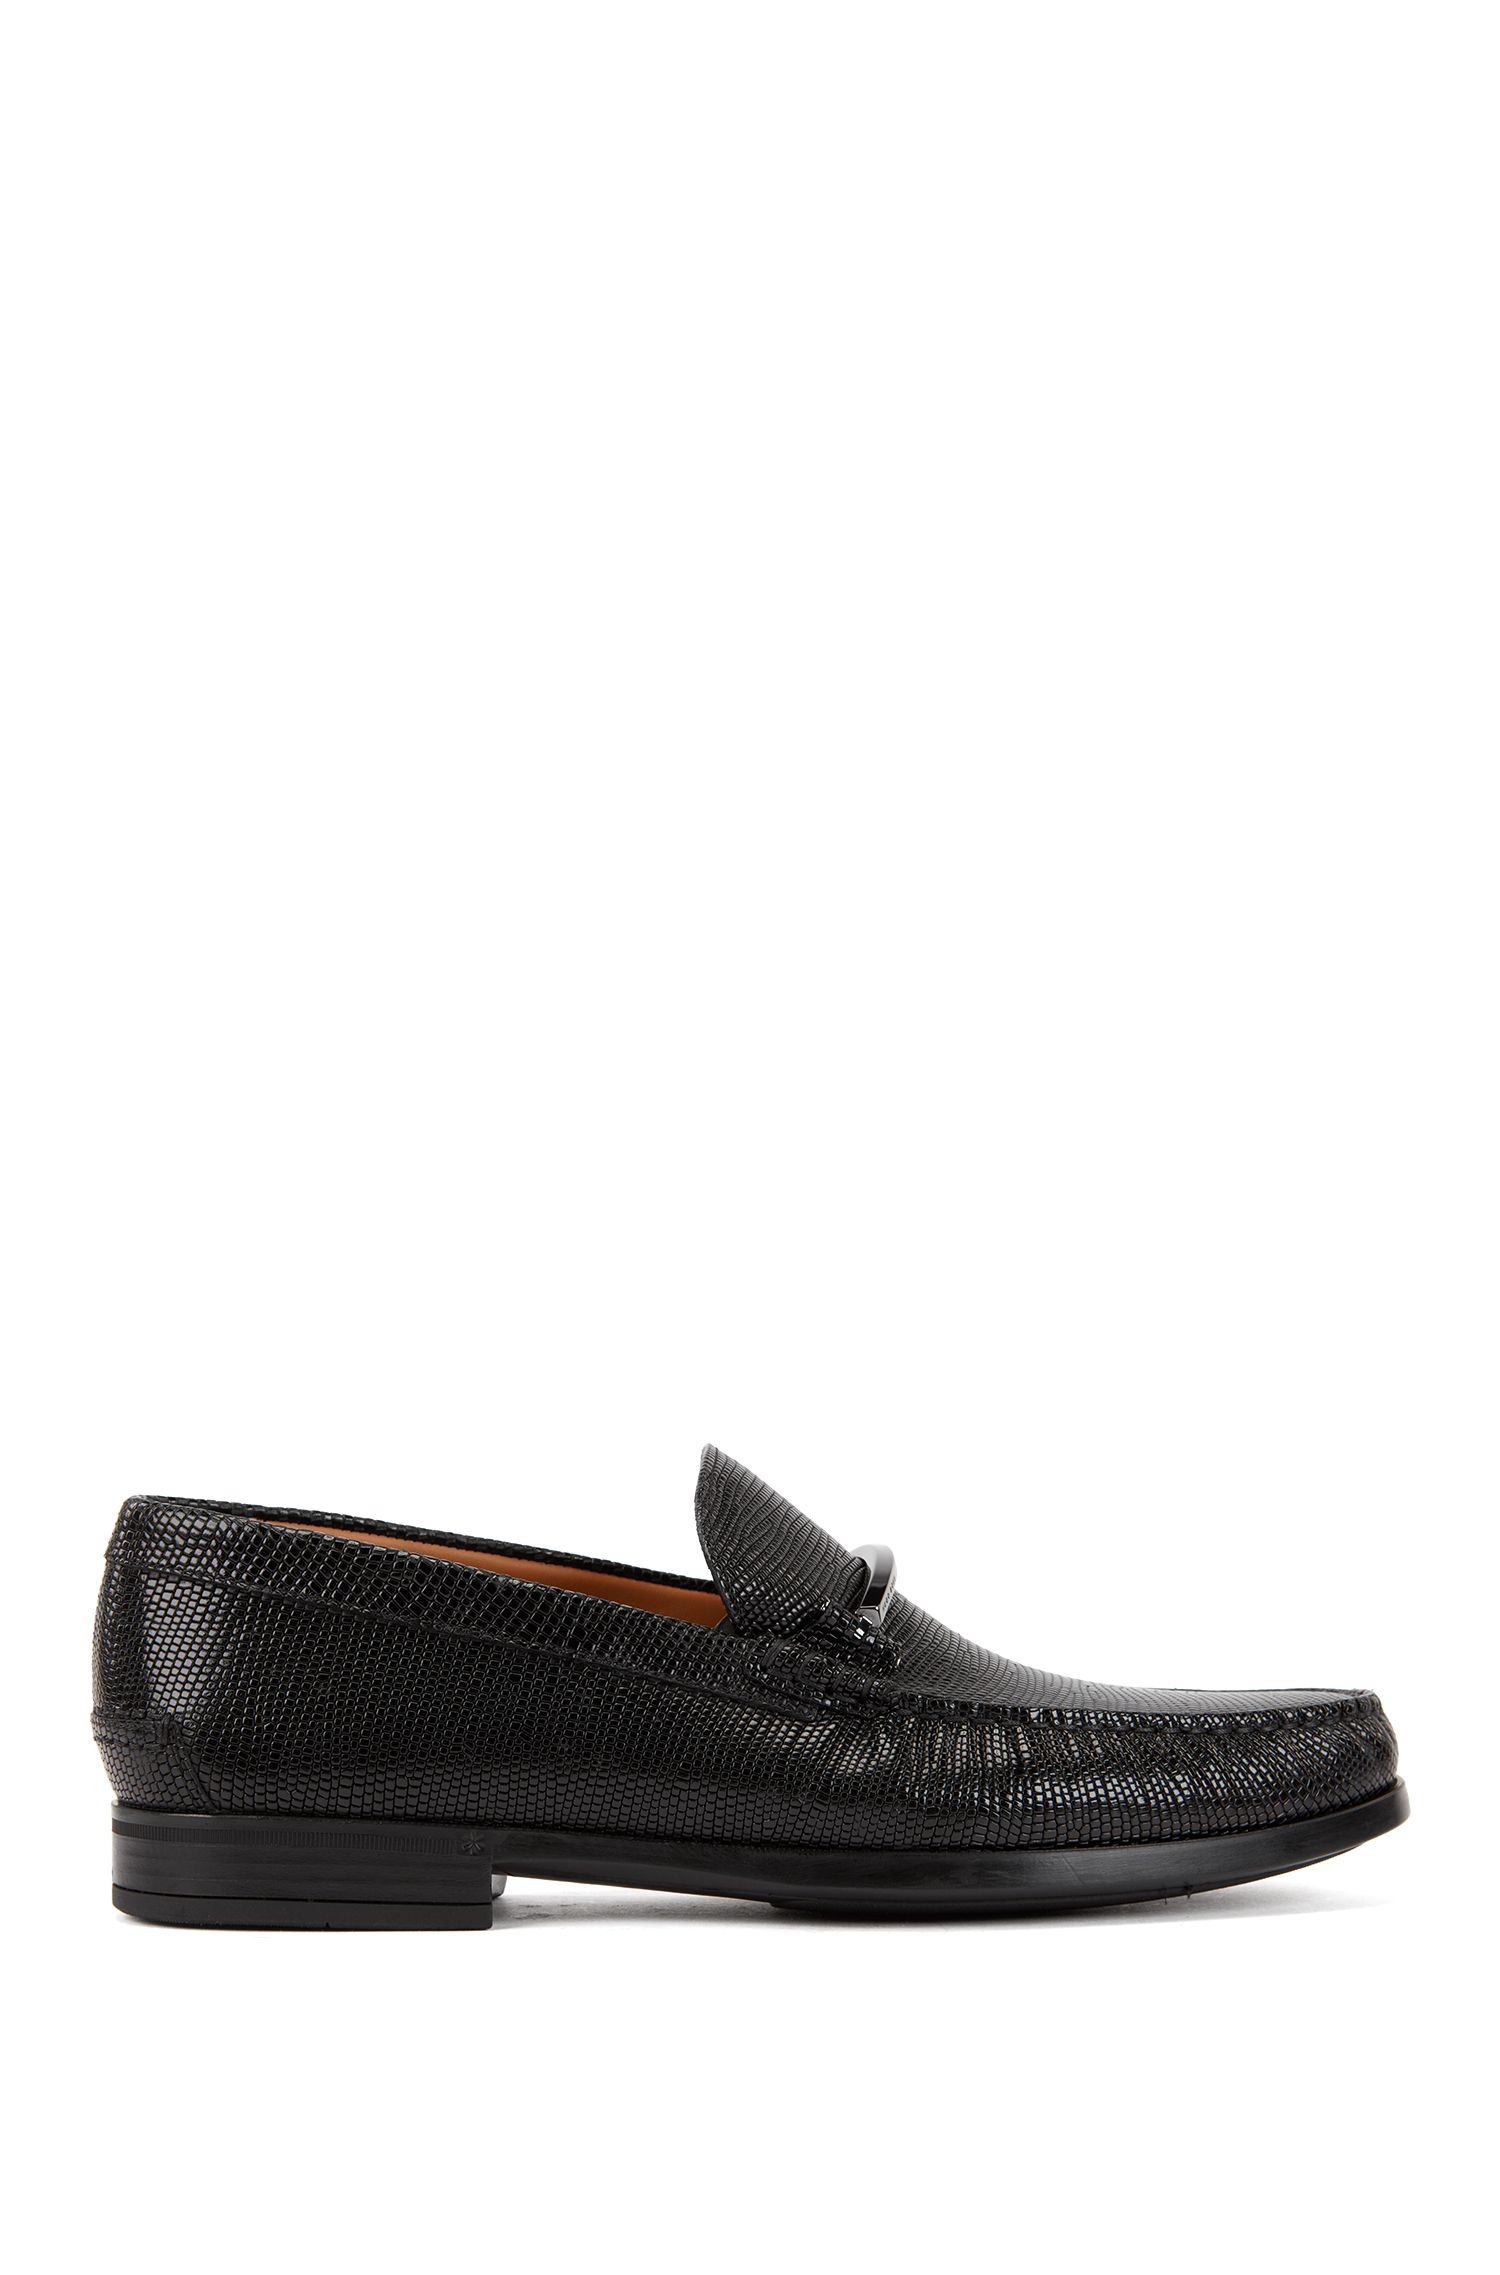 Italian-made moccasins with embossed calf-leather uppers, Black